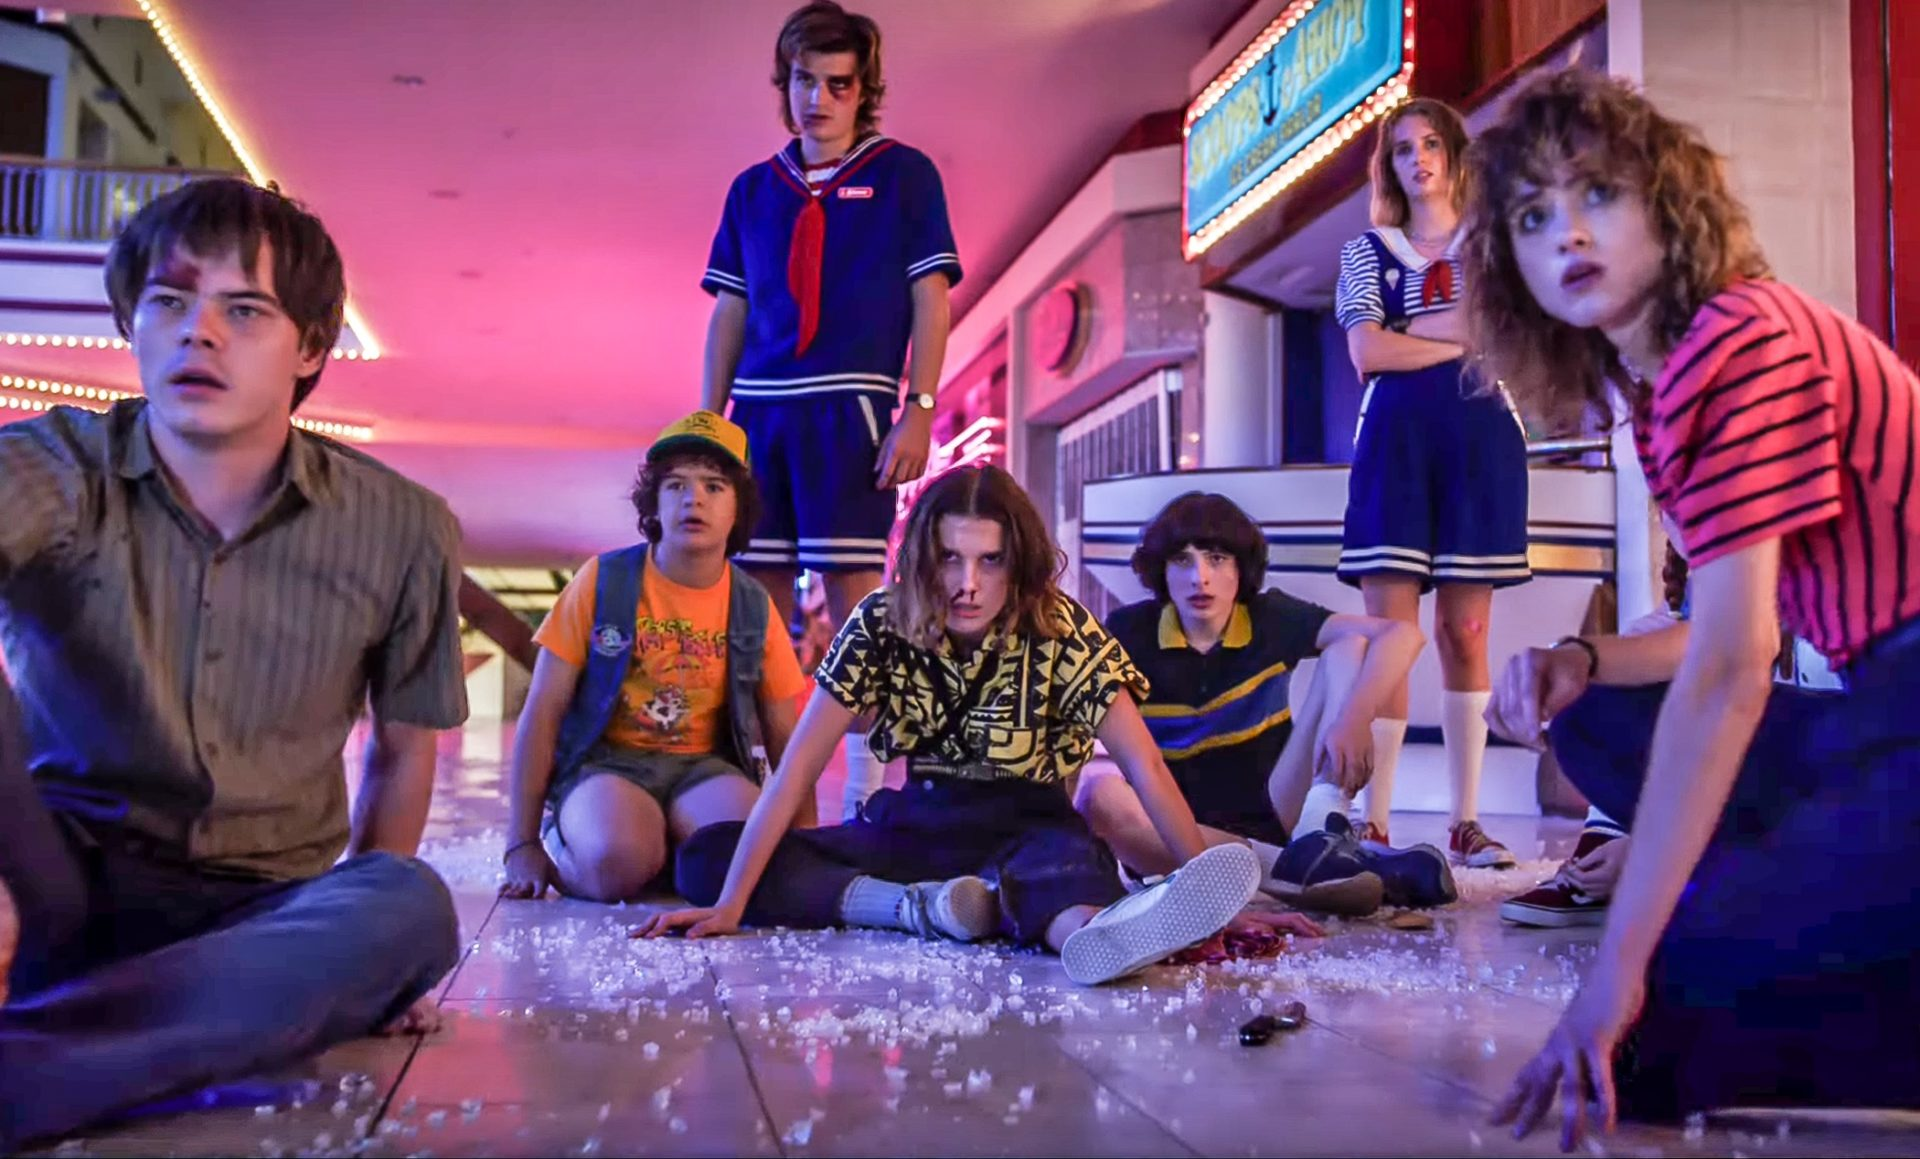 The Duffer Brothers Stranger Things with Winona Ryder, David Harbour, Millie Bobby Brown, Gaten Matarazzo, Natalia Dyer, Joe Keery, Noah Schnapp, Dacre Montgomery, Maya Hawke